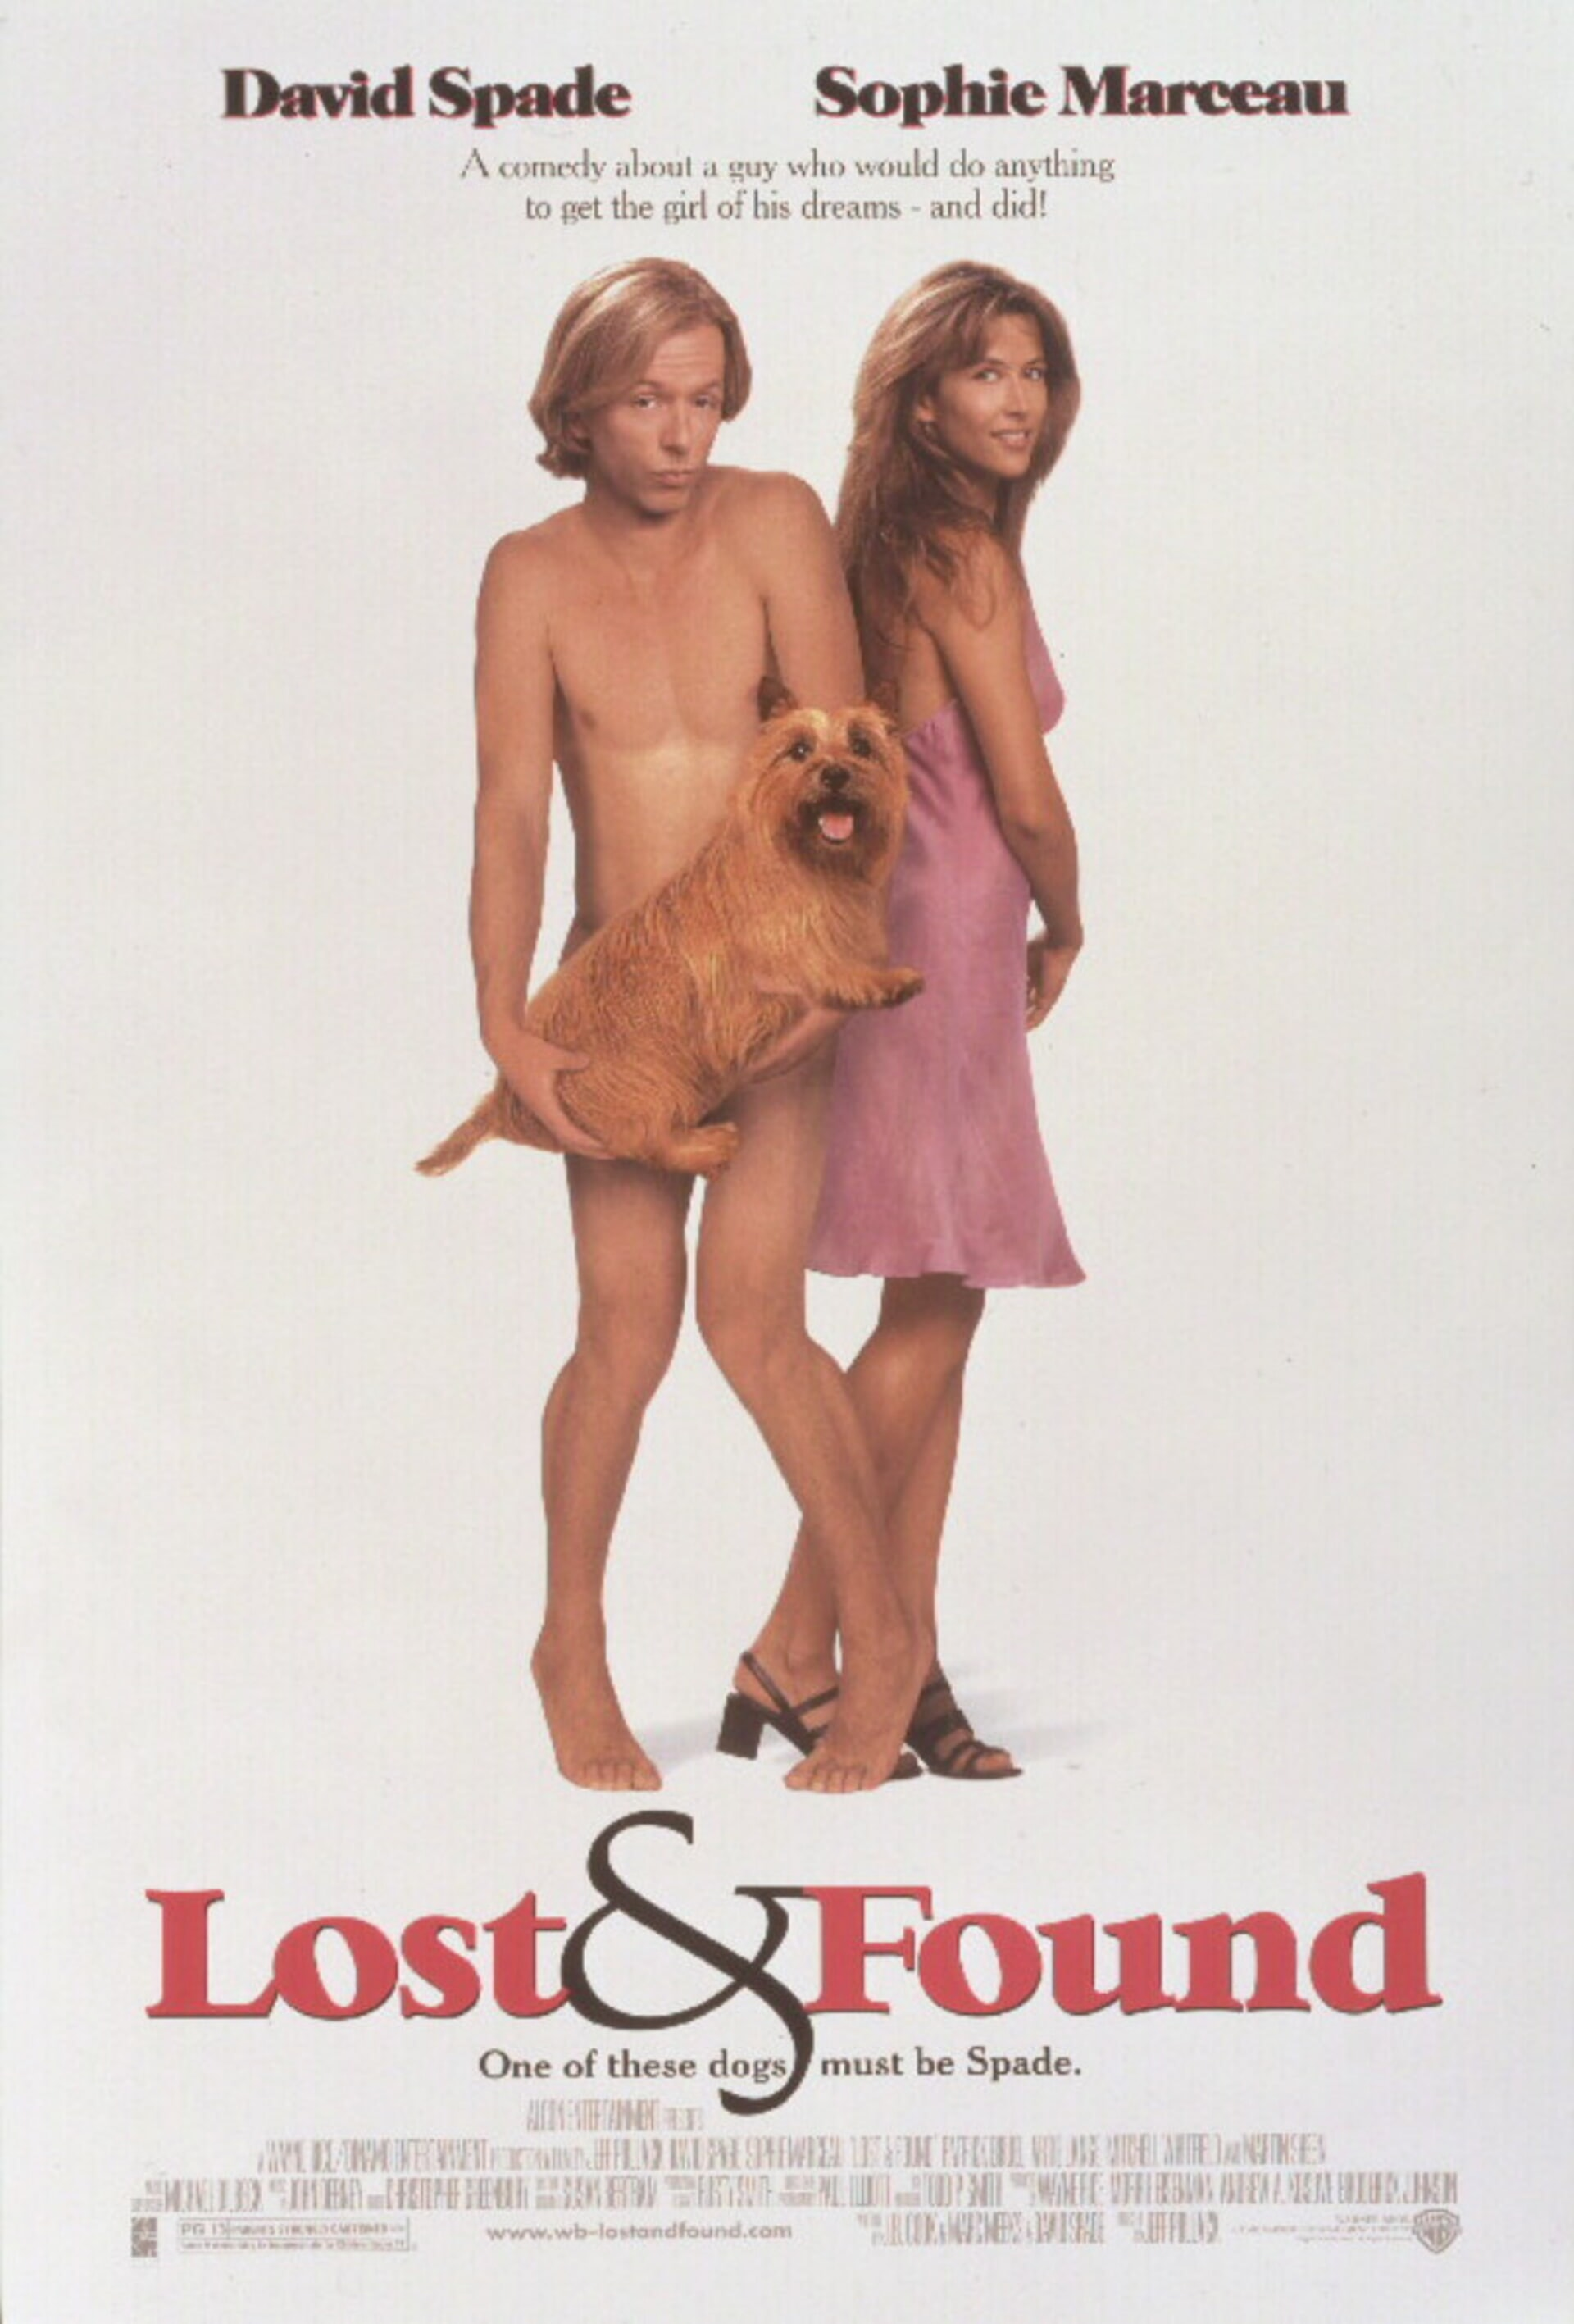 Lost and Found - Poster 1